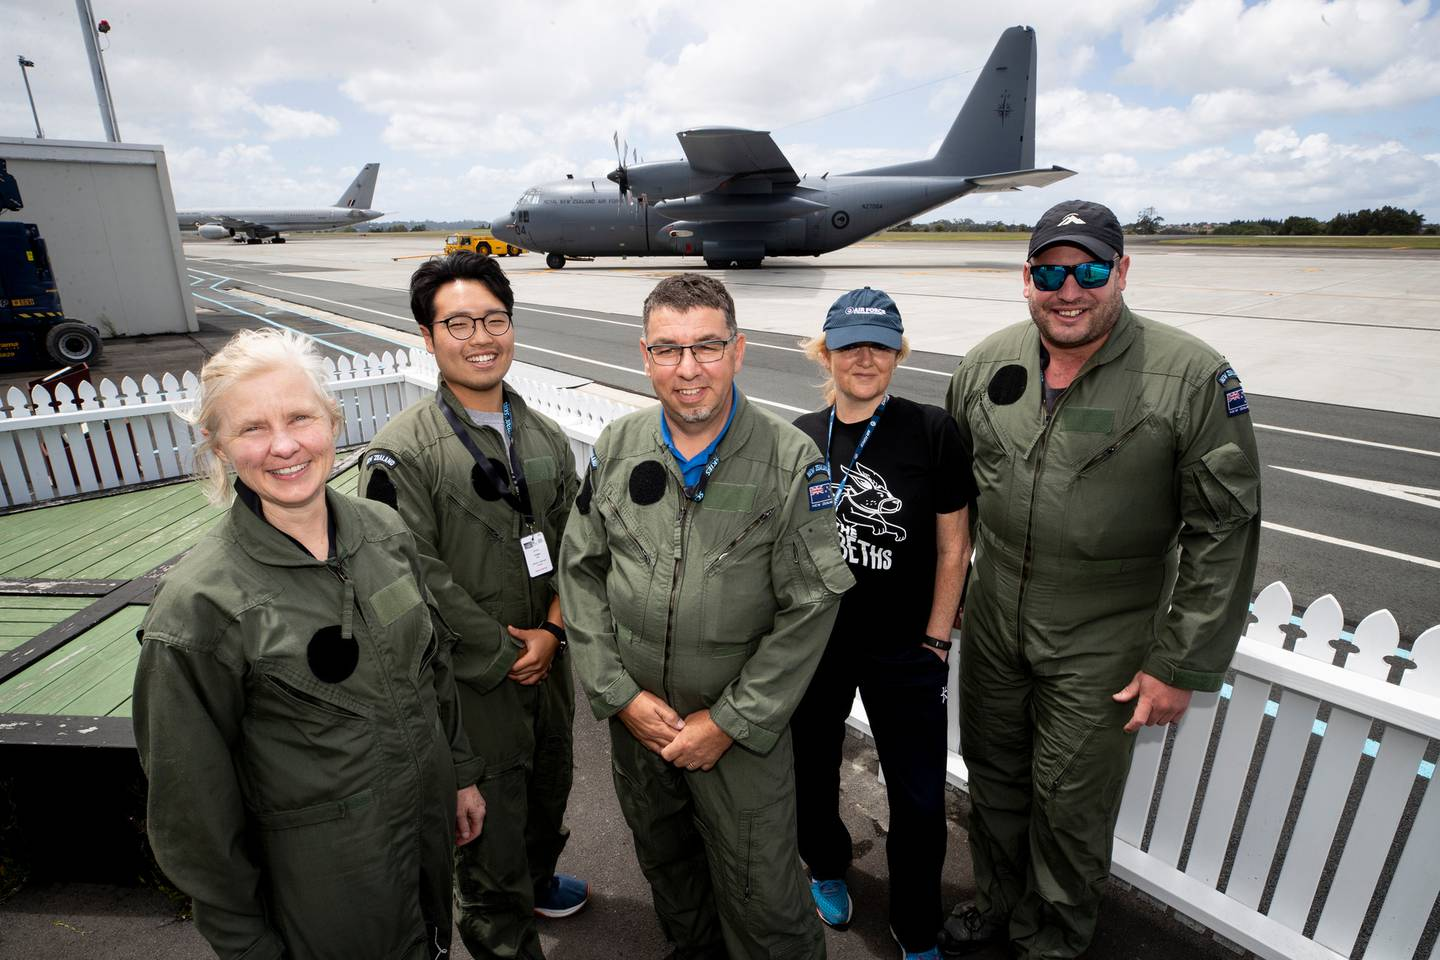 Teachers take to the sky, from left, Sarah Lovell, Young Lee, Stephan Van Haren, Dr Angie...